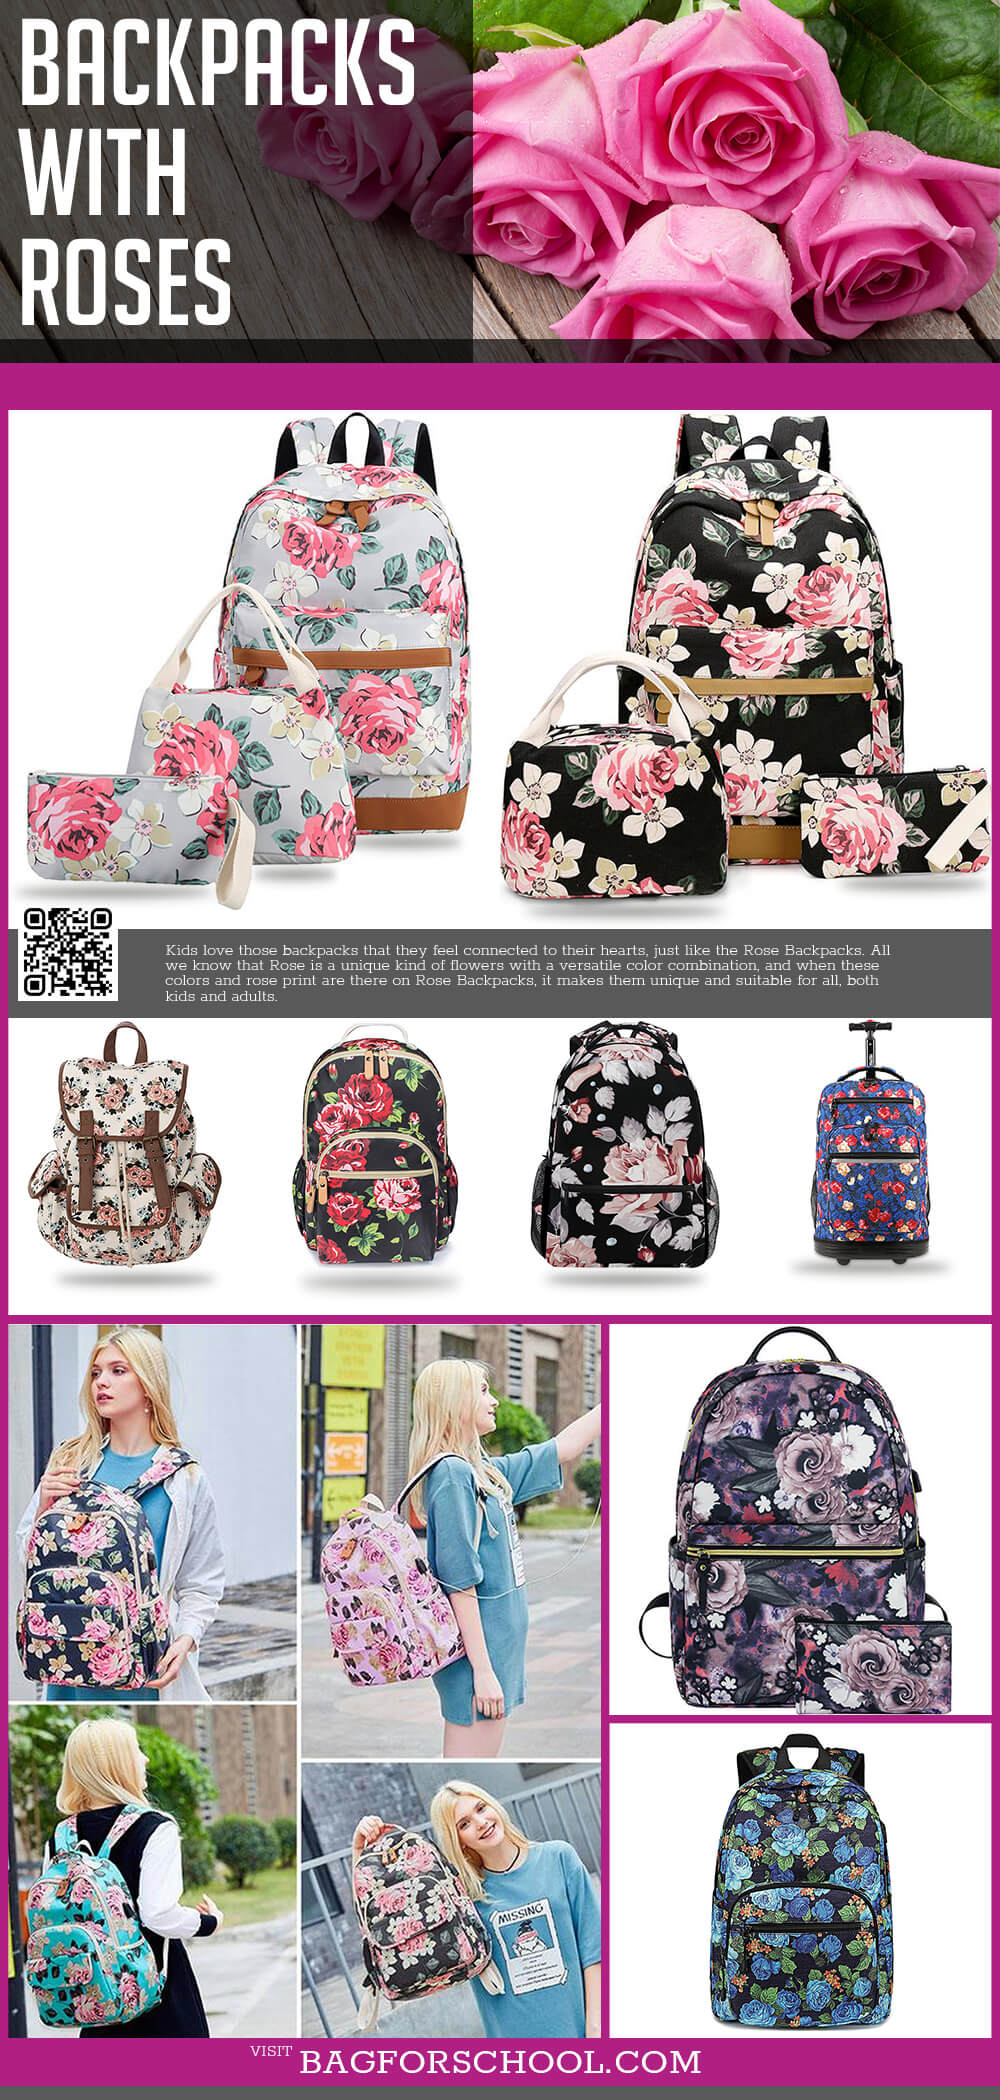 Backpacks with Roses